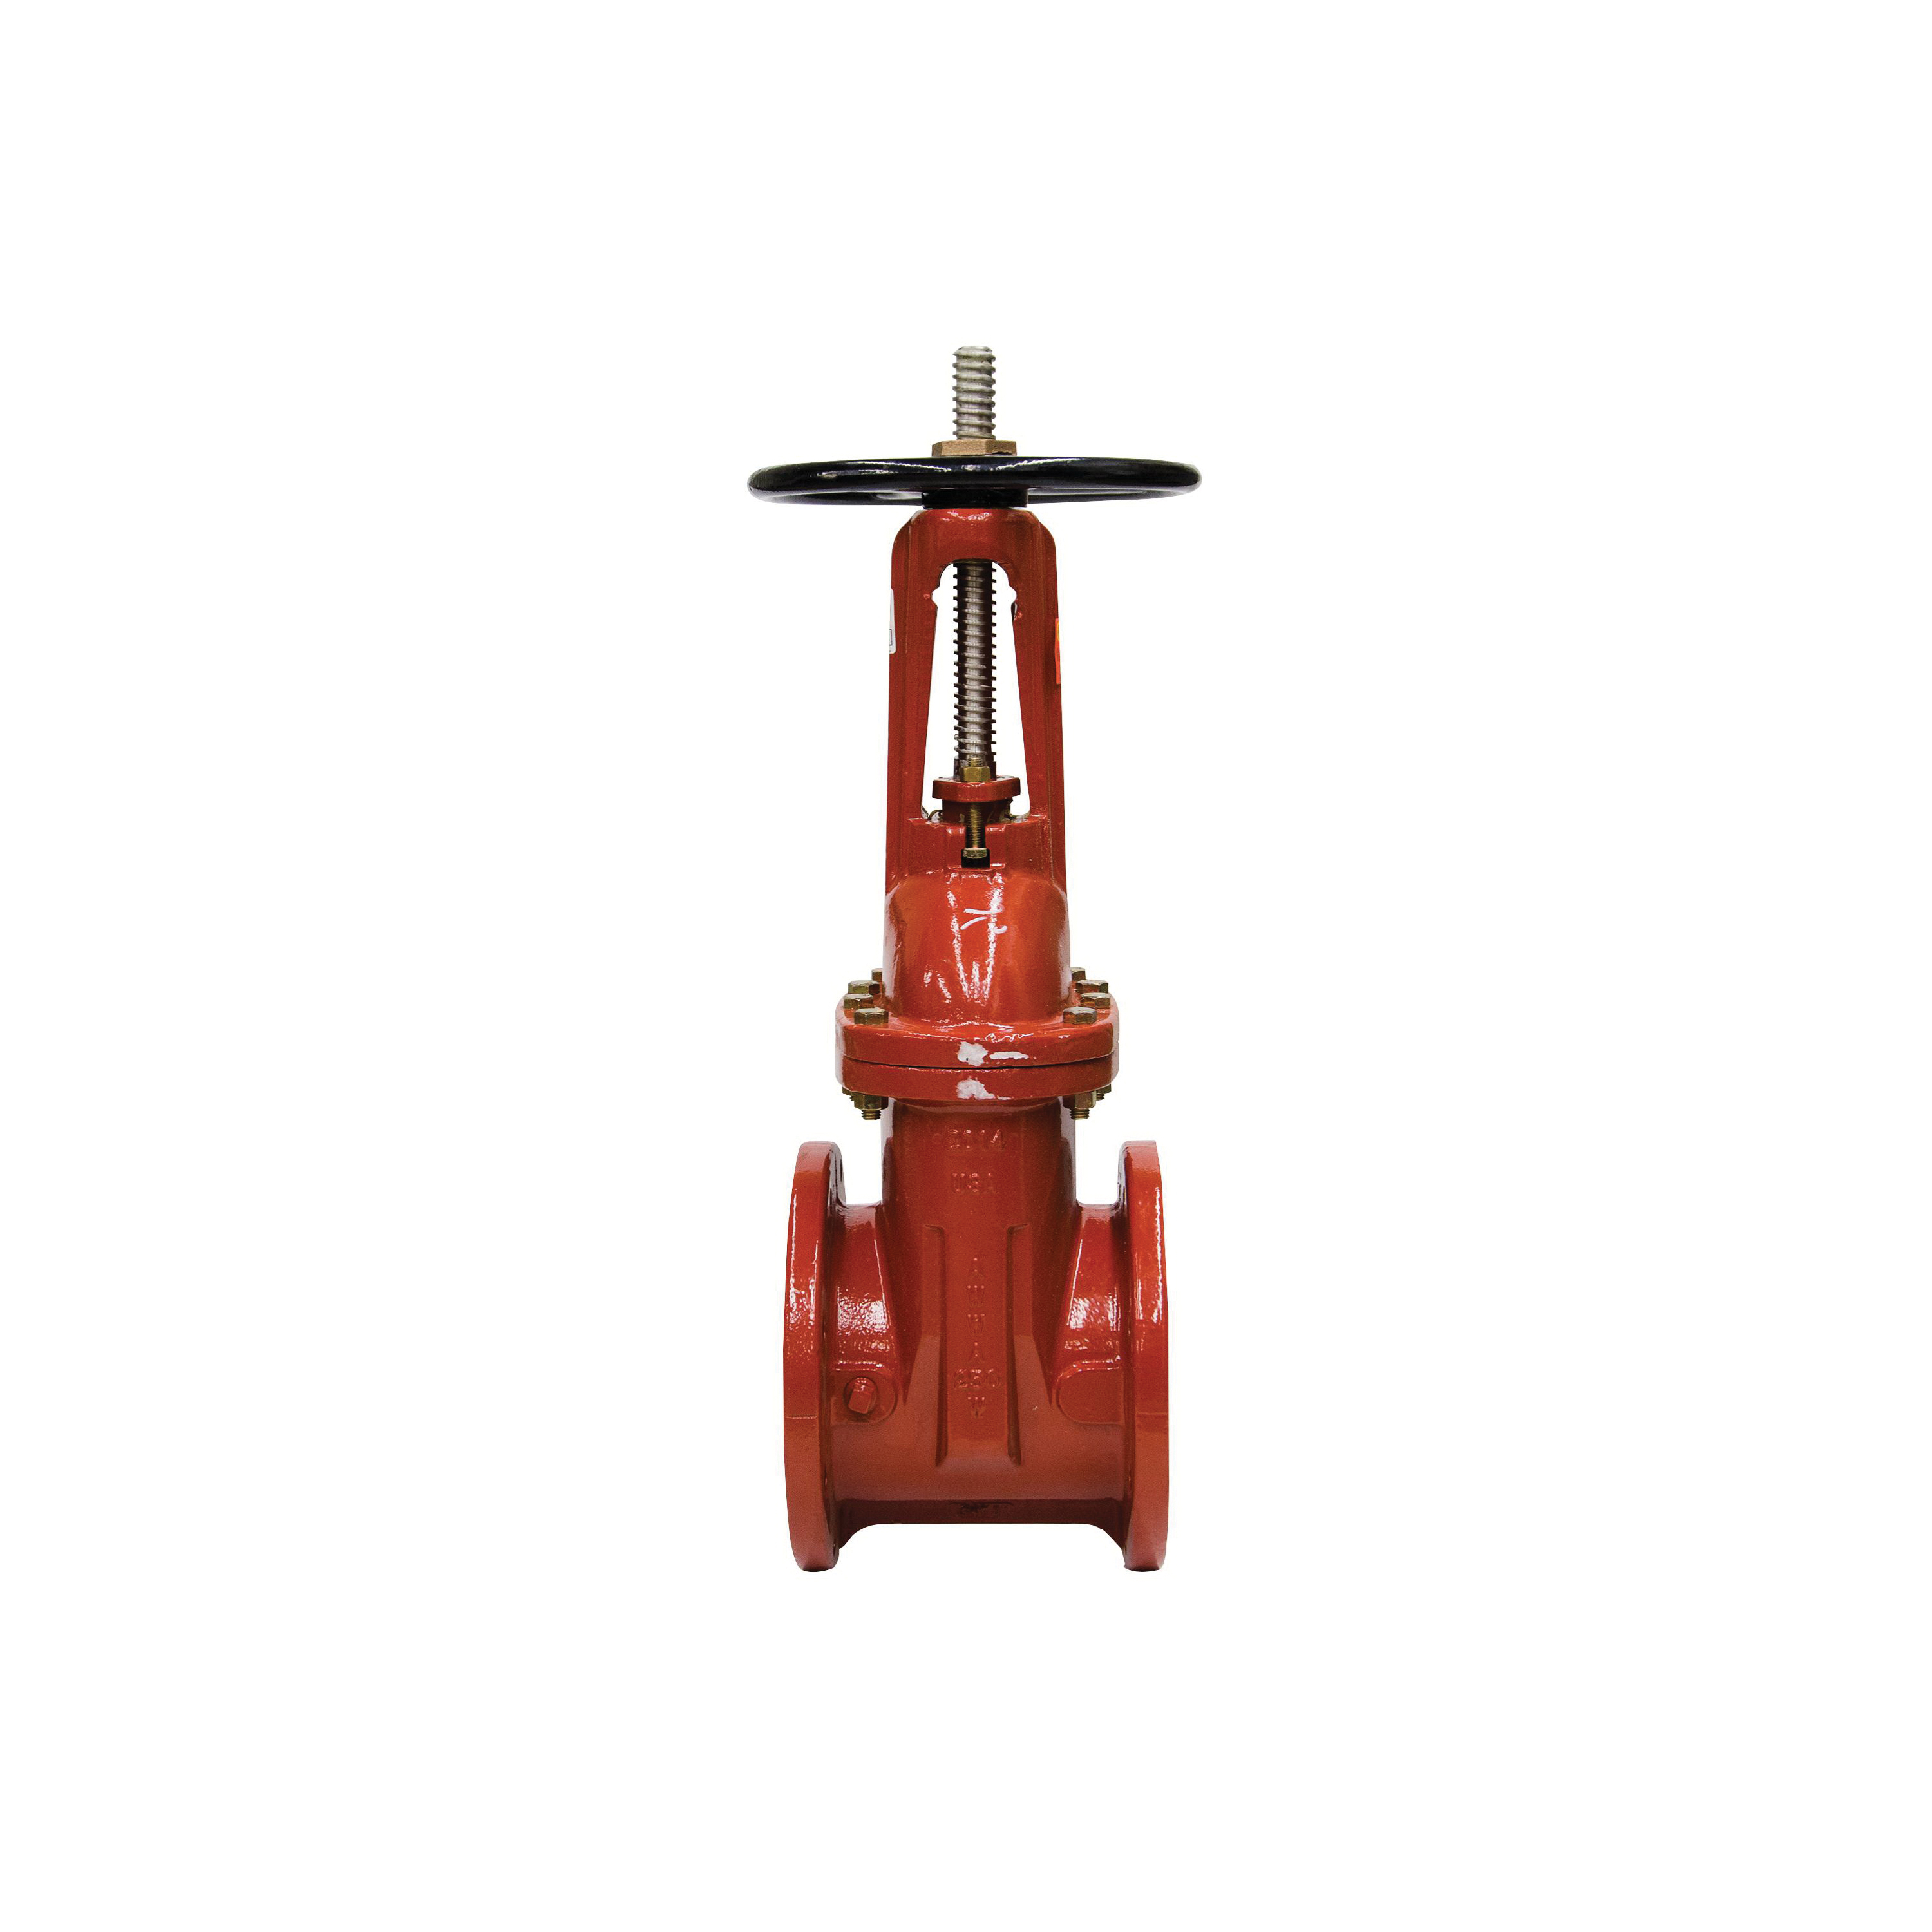 WATTS® 0702330 408 Straight Gate Valve, 8 in, Flange, Cast Iron Body, Cross Handwheel Actuator